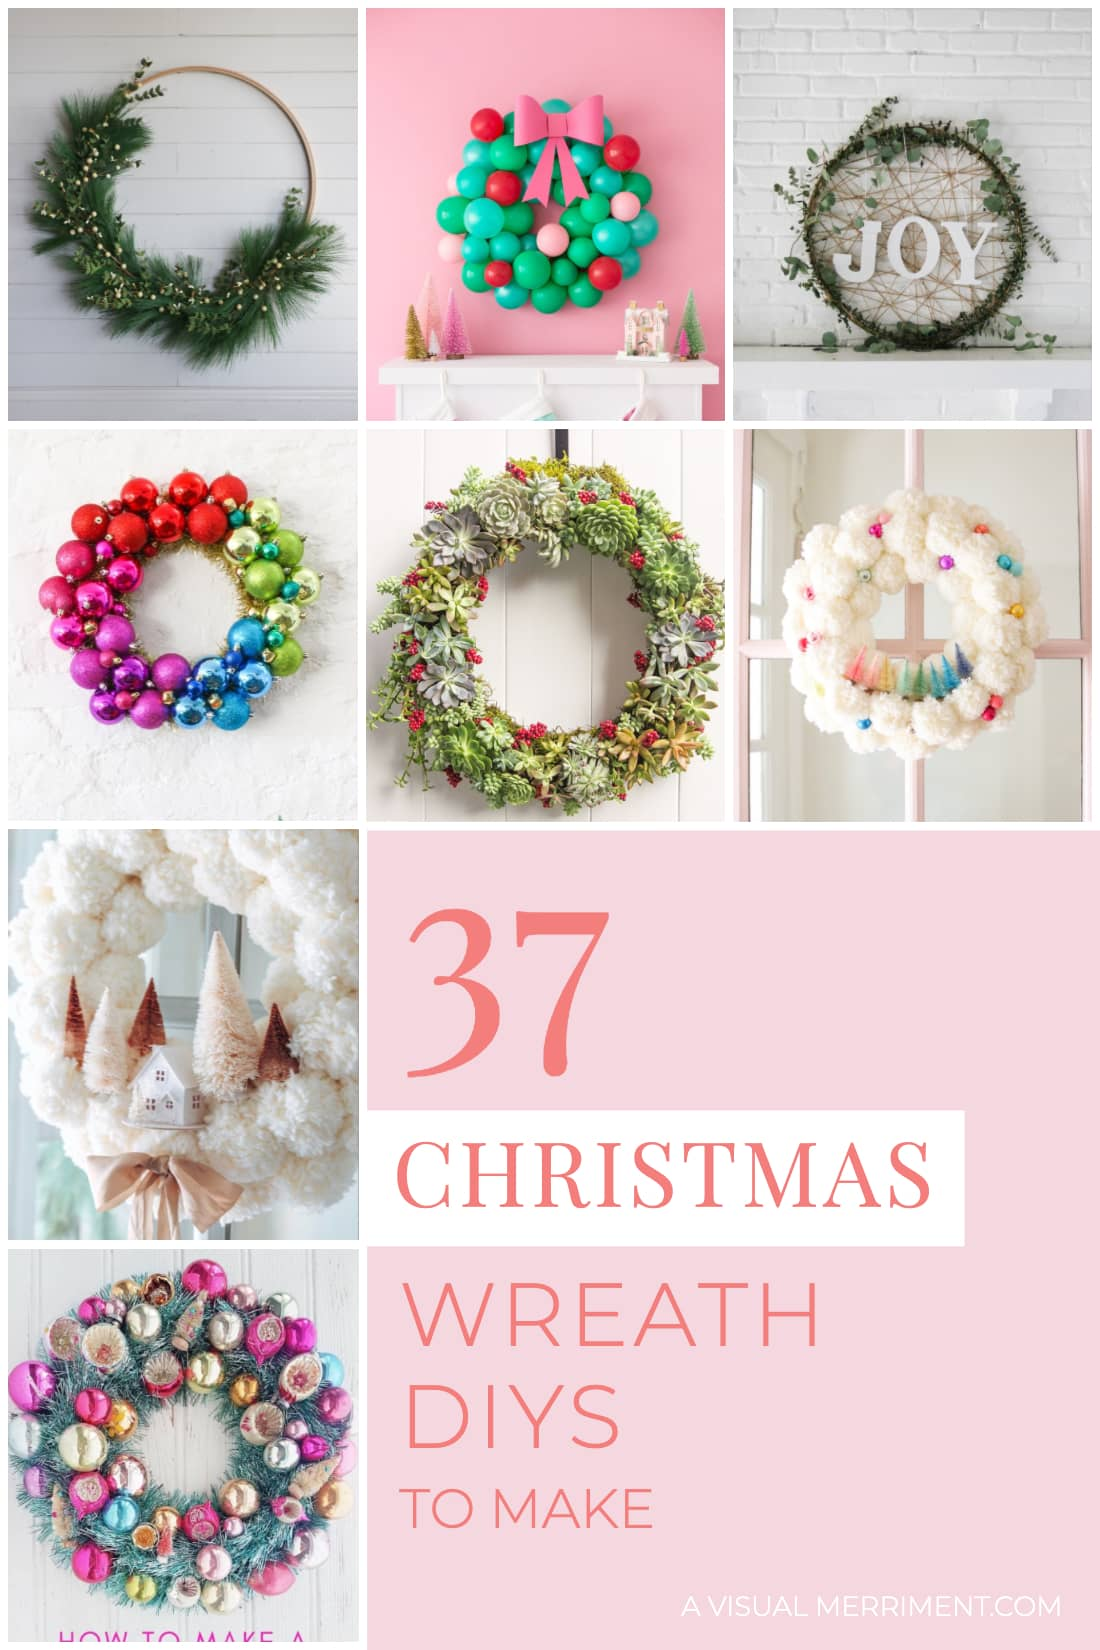 37 Diy Christmas Wreaths To Make A Visual Merriment